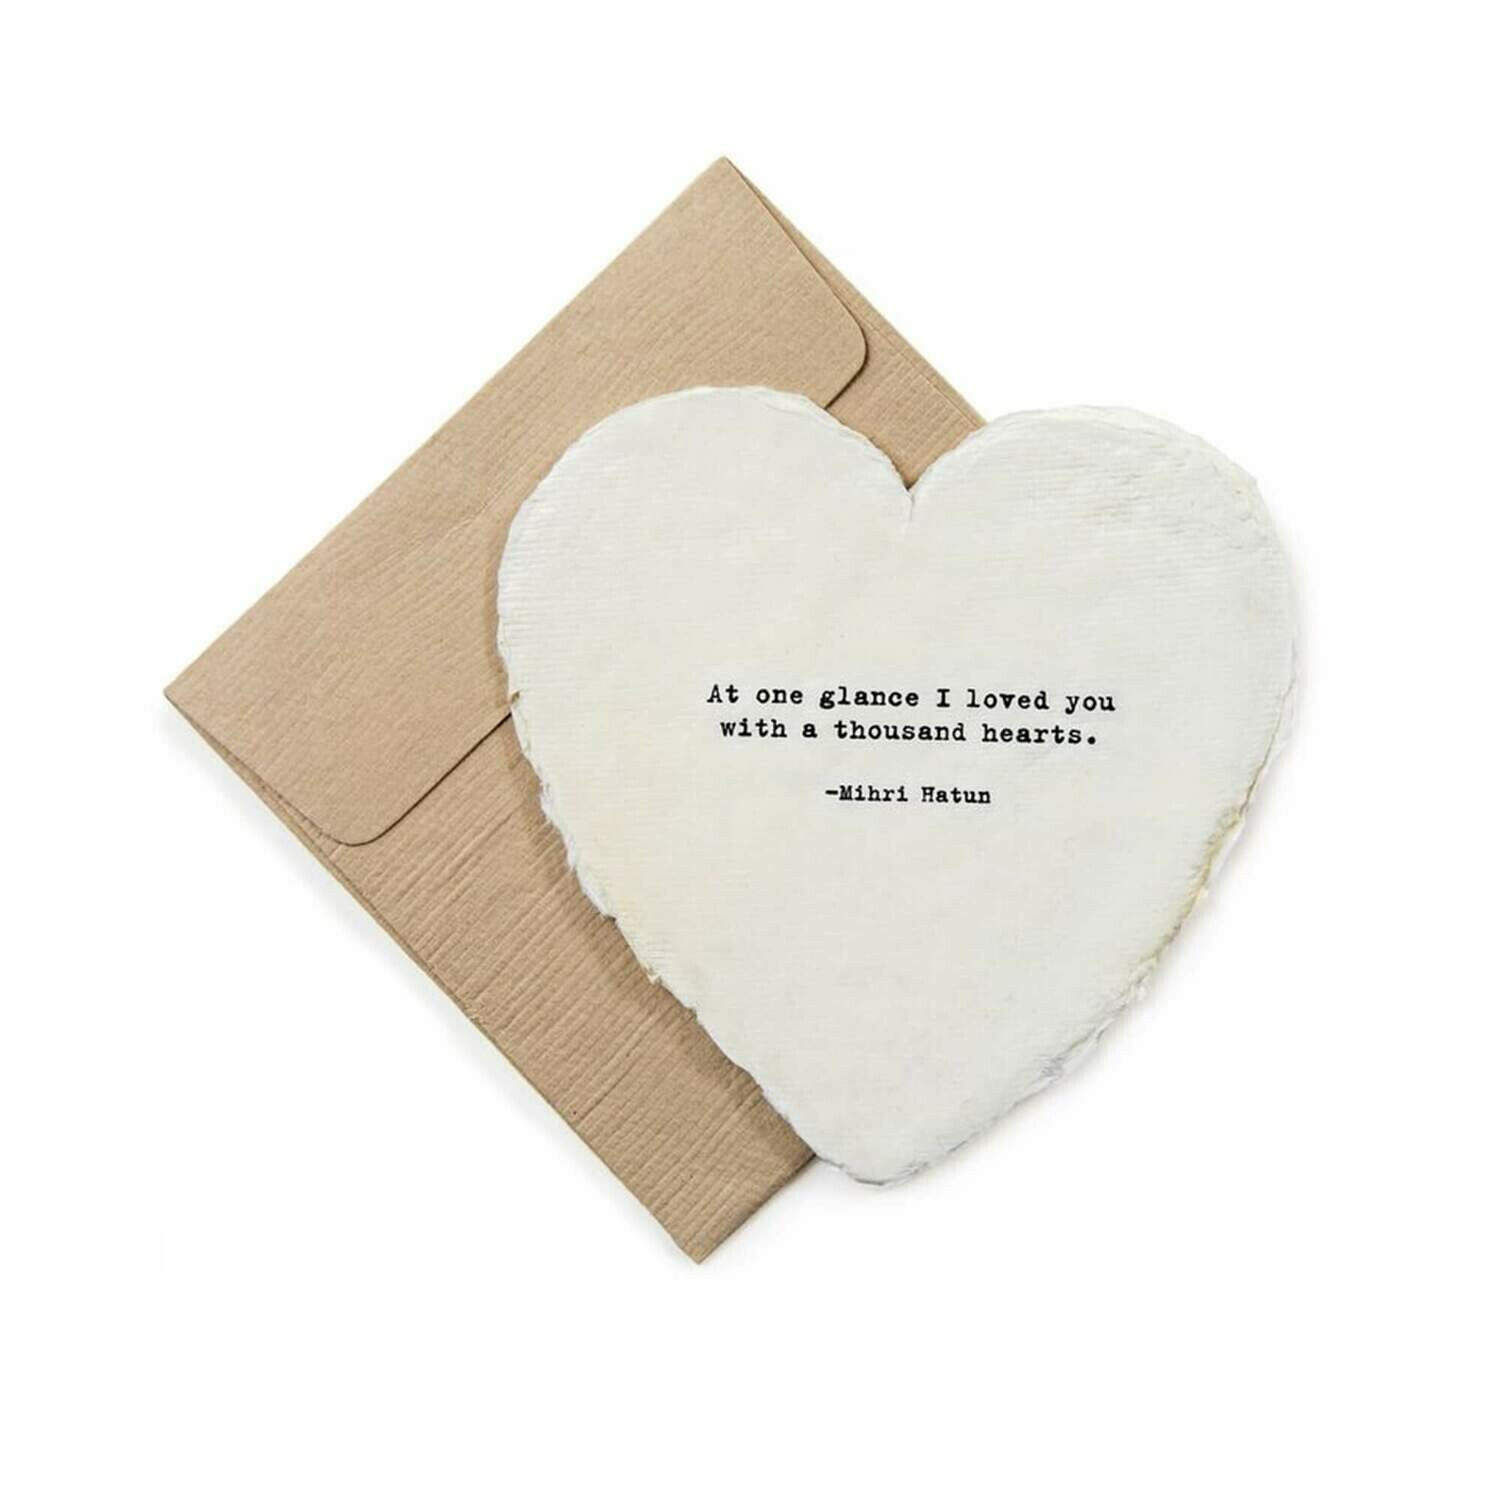 Mini Heart Shaped Card & Envelope-At one glance